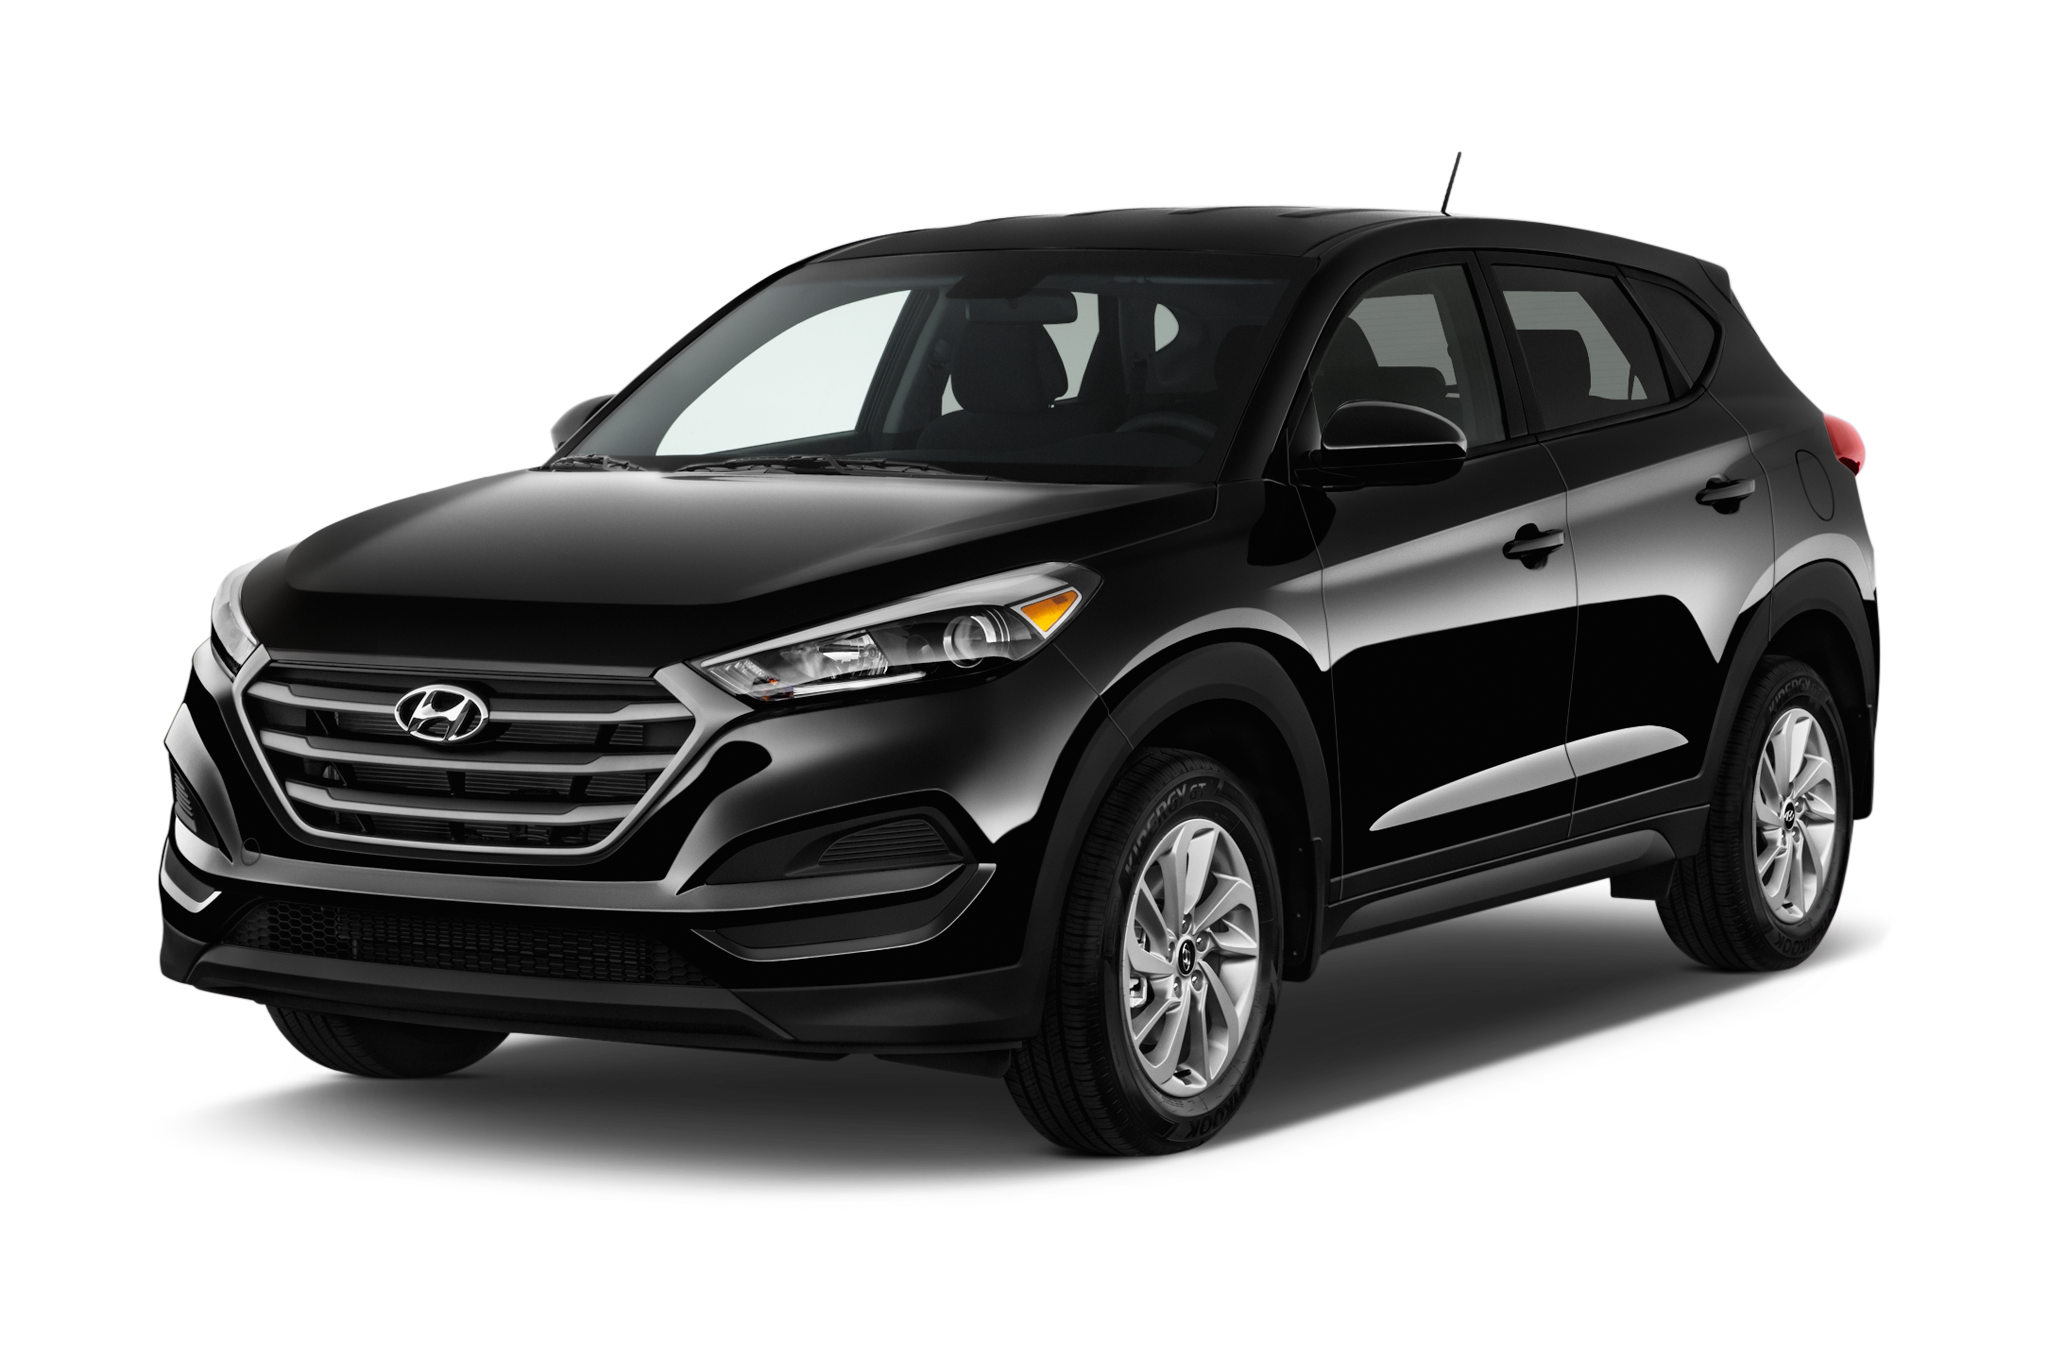 2018 hyundai tucson sel awd specs and features msn autos. Black Bedroom Furniture Sets. Home Design Ideas